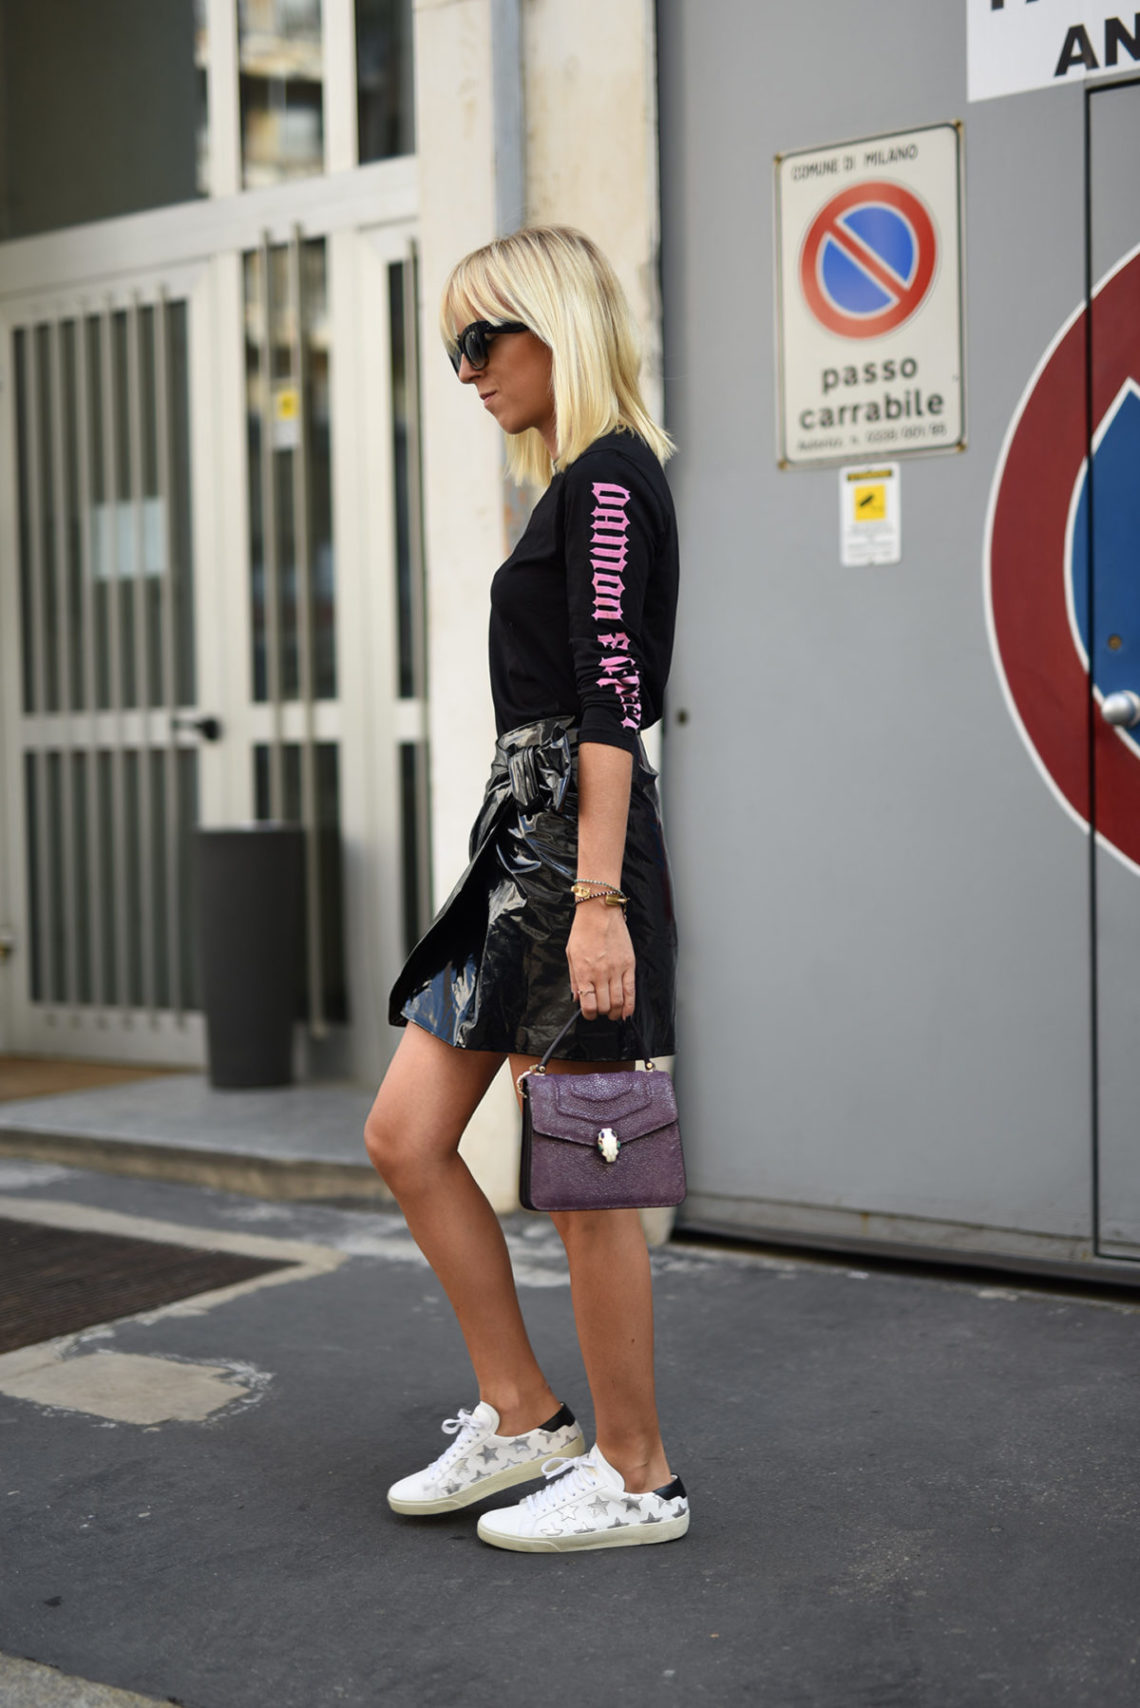 isabel-marant-leather-skirt-tanja-trutschnig-blogger-bazaar-mfw-saint-laurent-star-sneaker-5